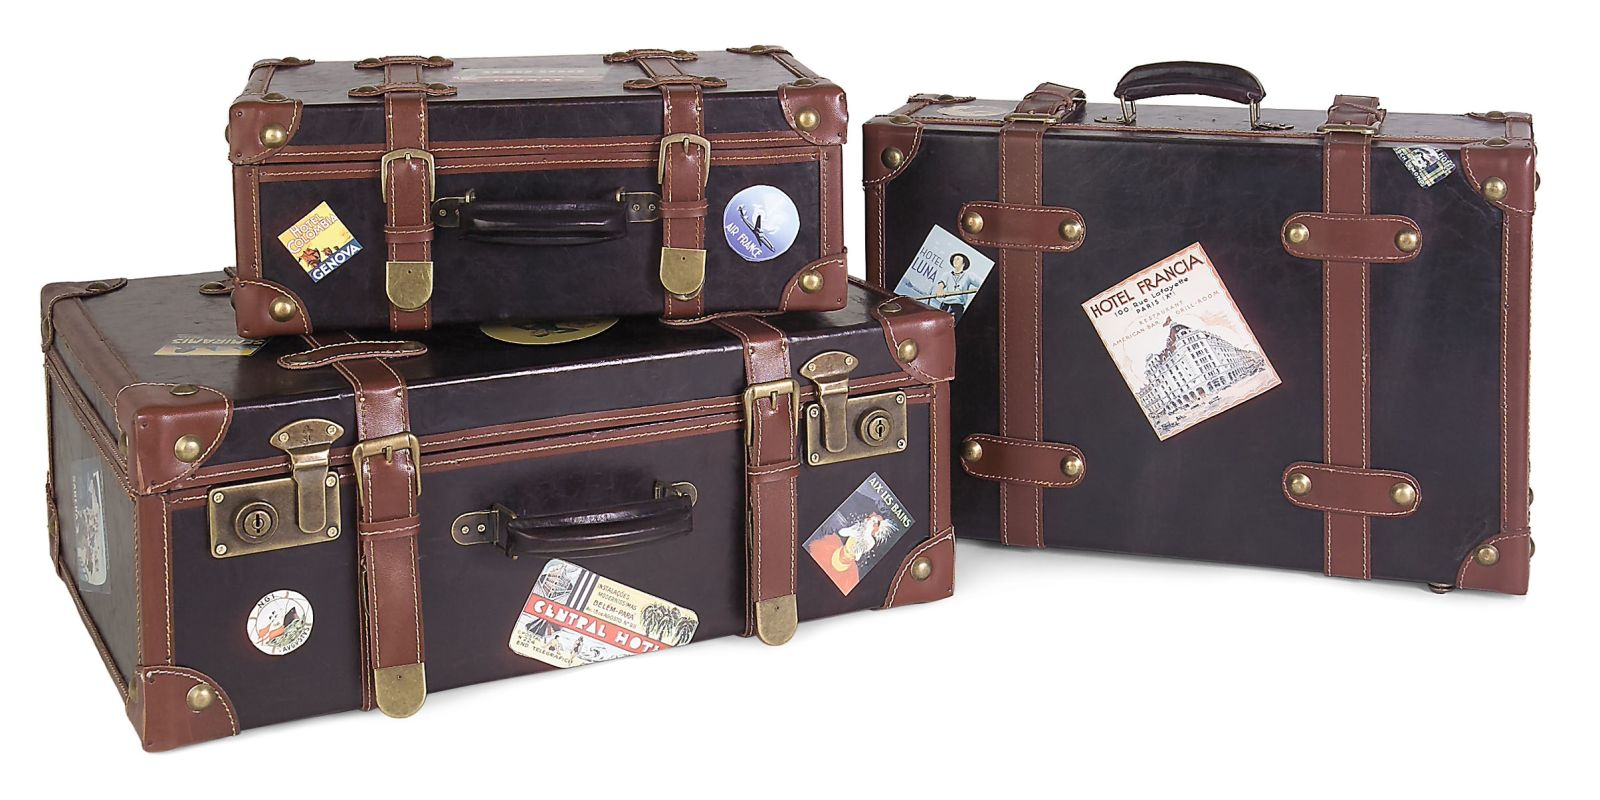 IMAX Home 5972-3 Labeled Suitcases - Set of 3 Home Decor Boxes and